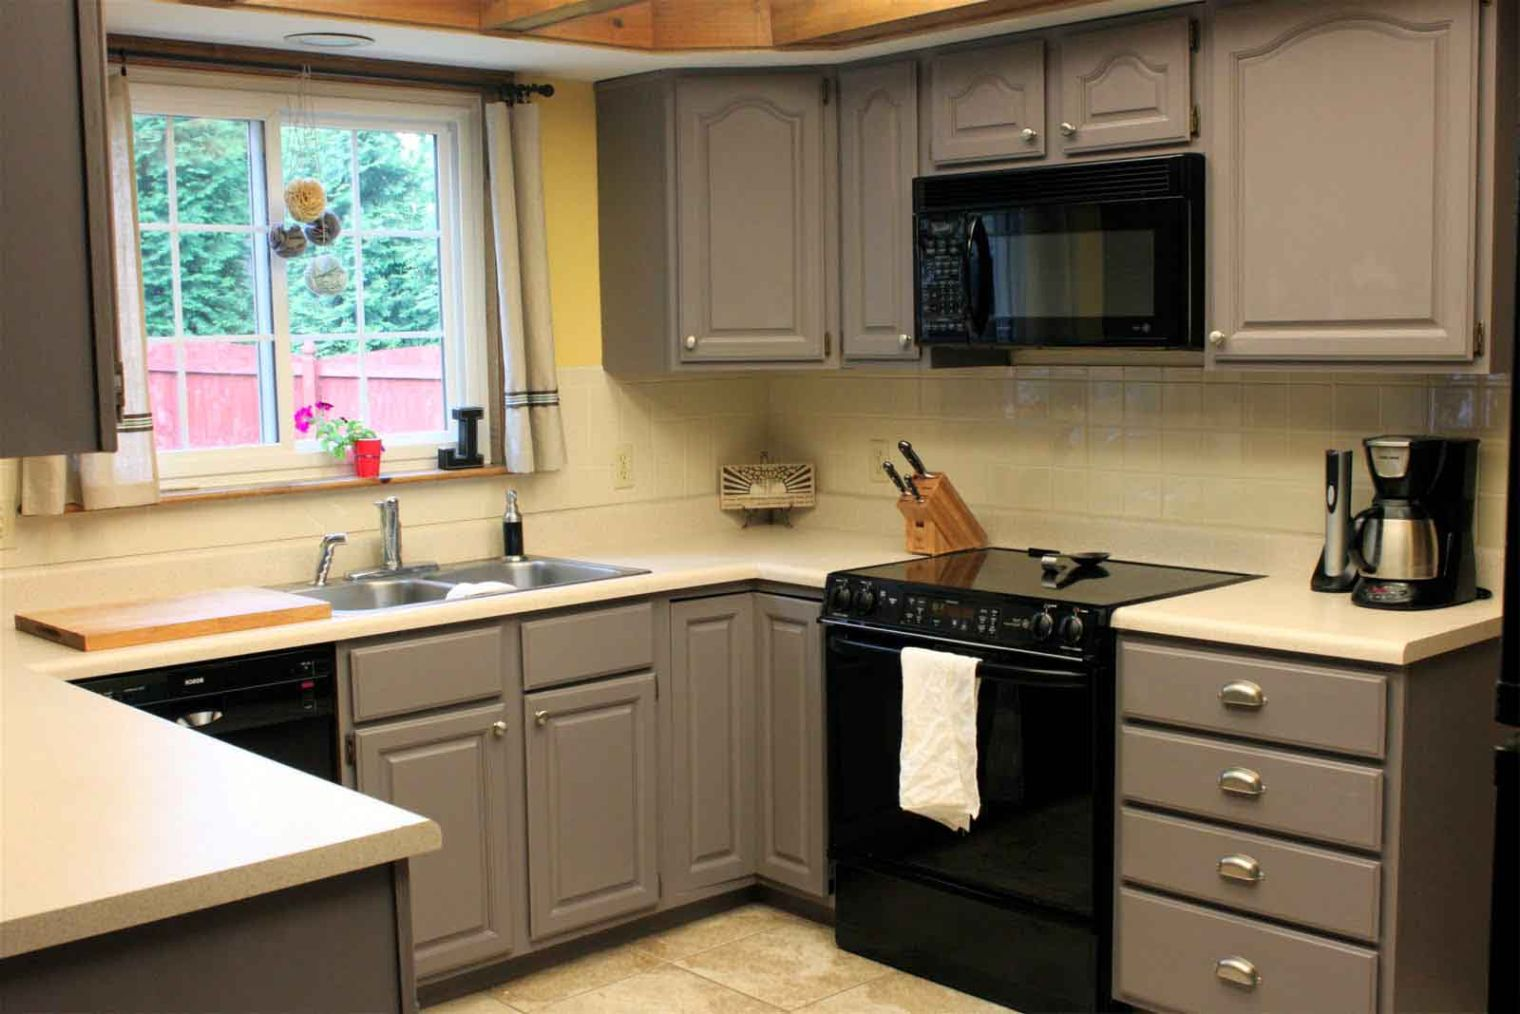 Grey painted kitchen cabinets in small kitchen space for Small kitchen units pictures